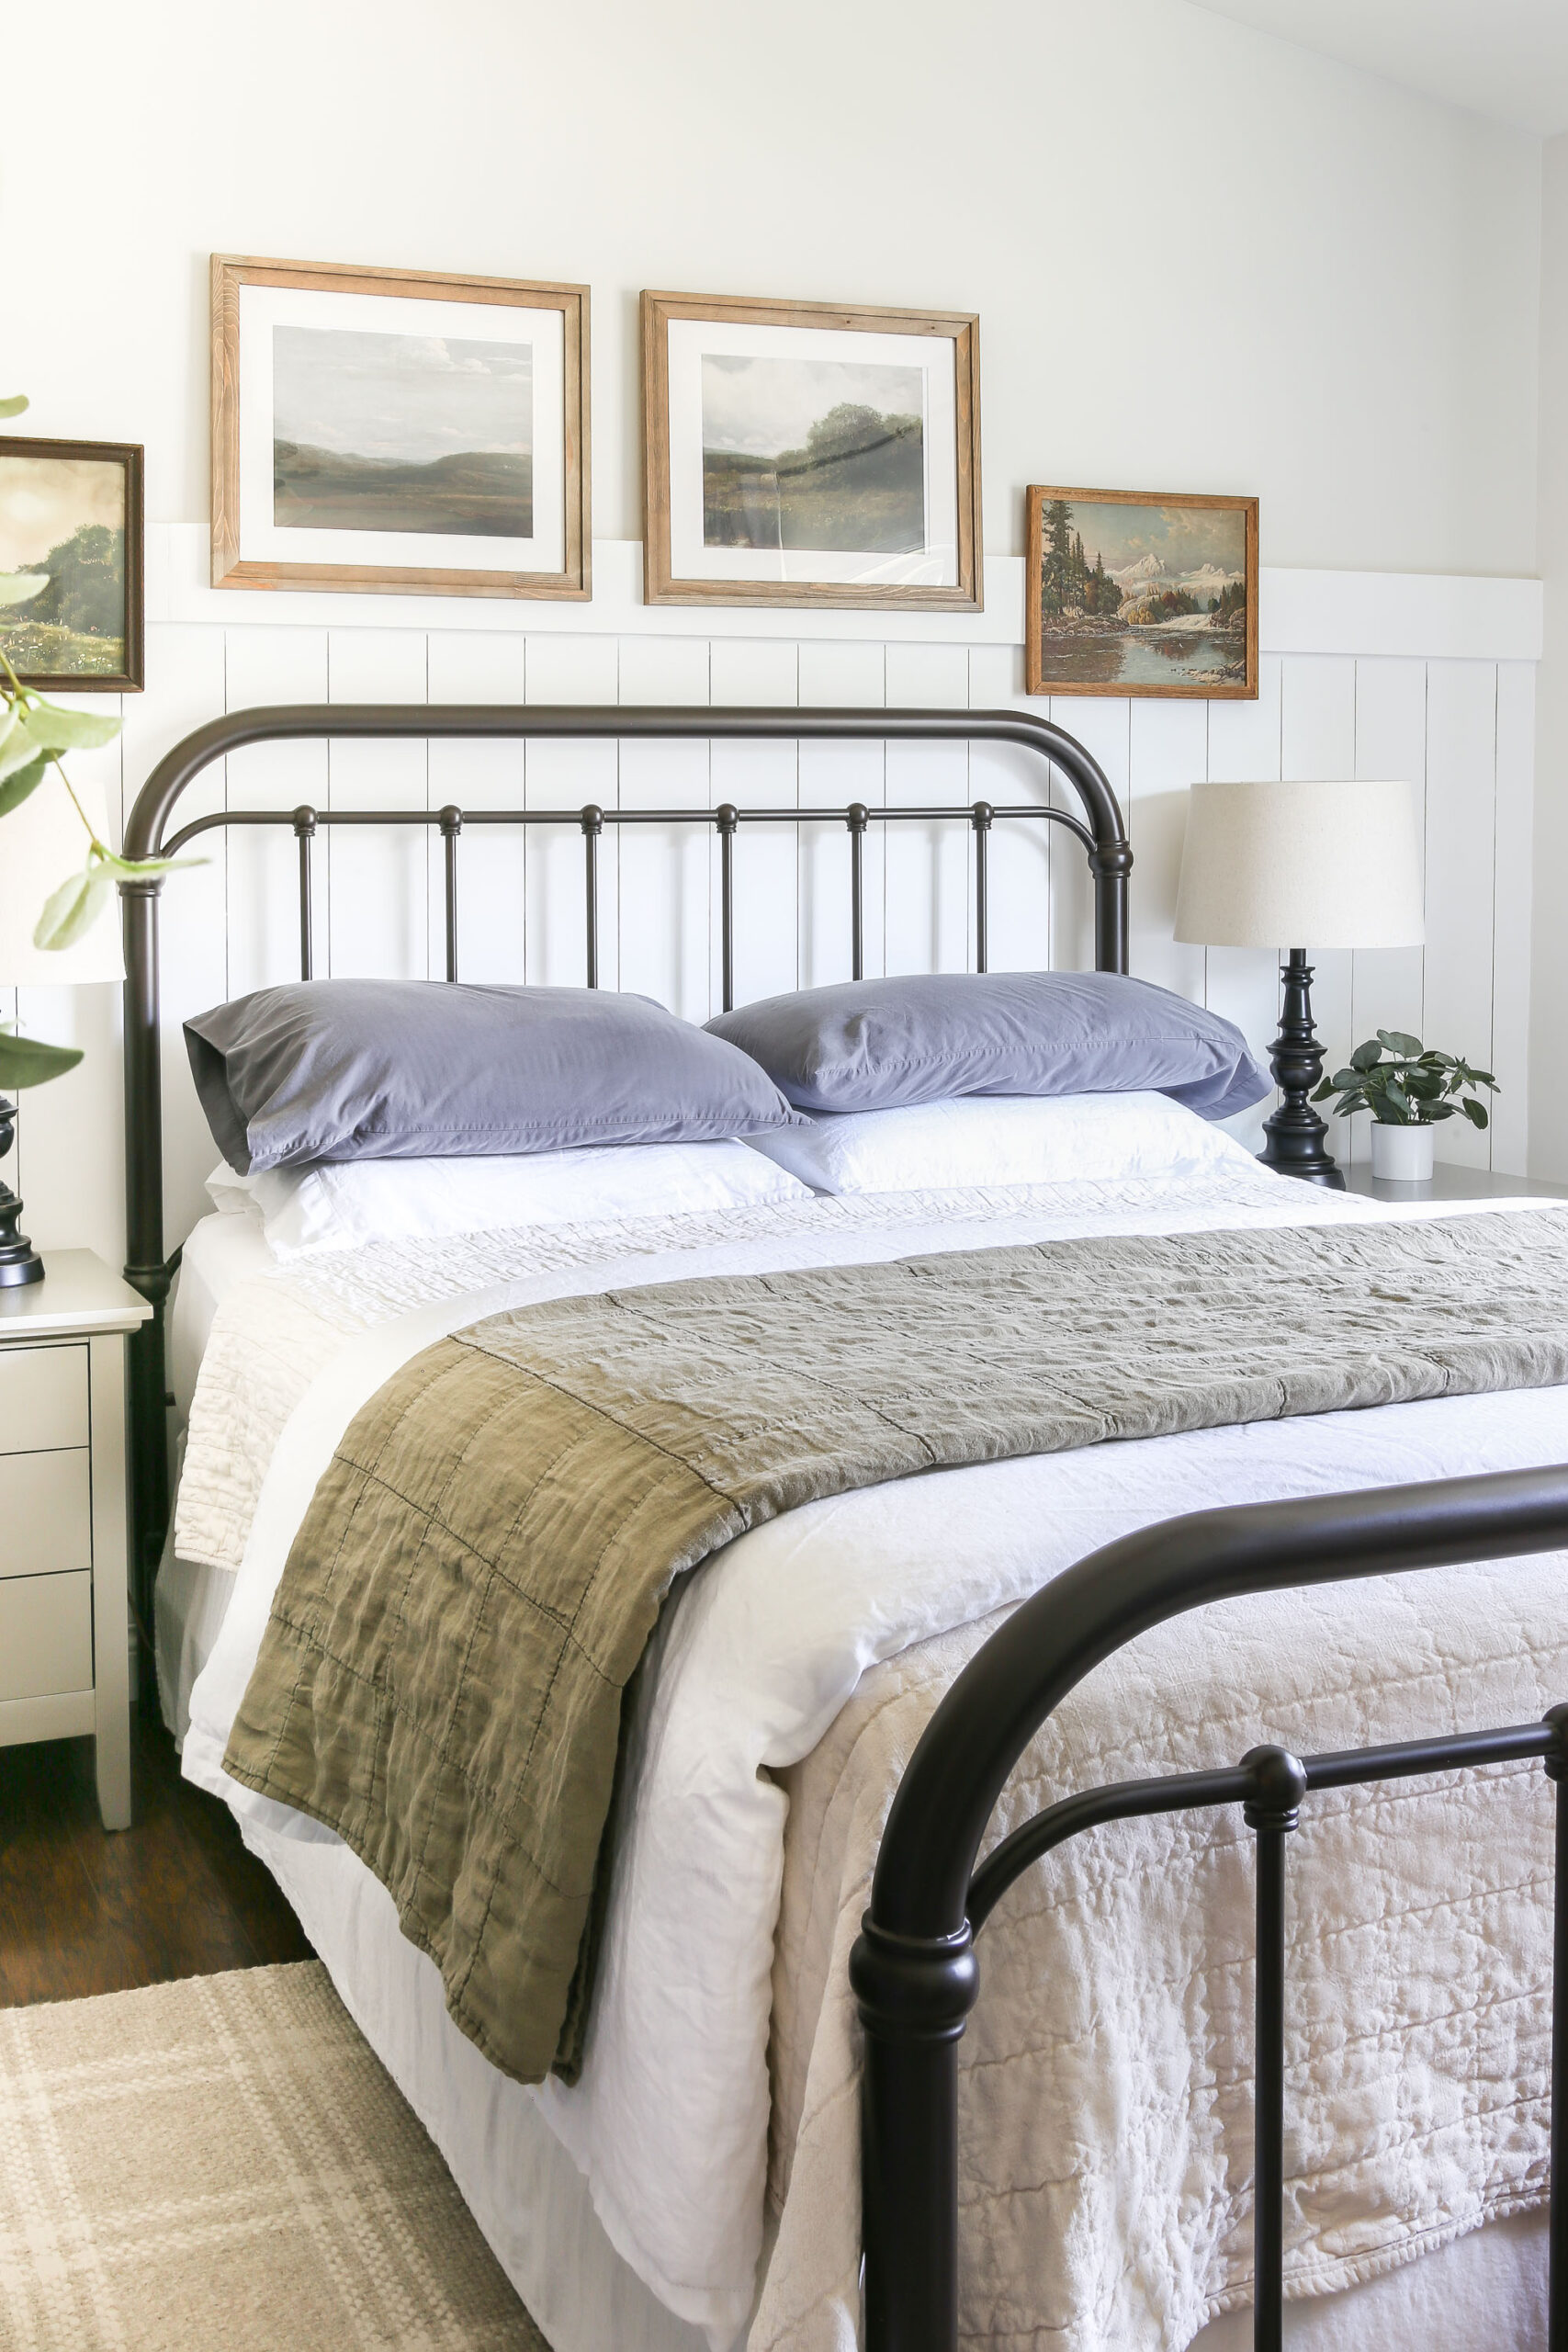 How to Layer and Style a Bed